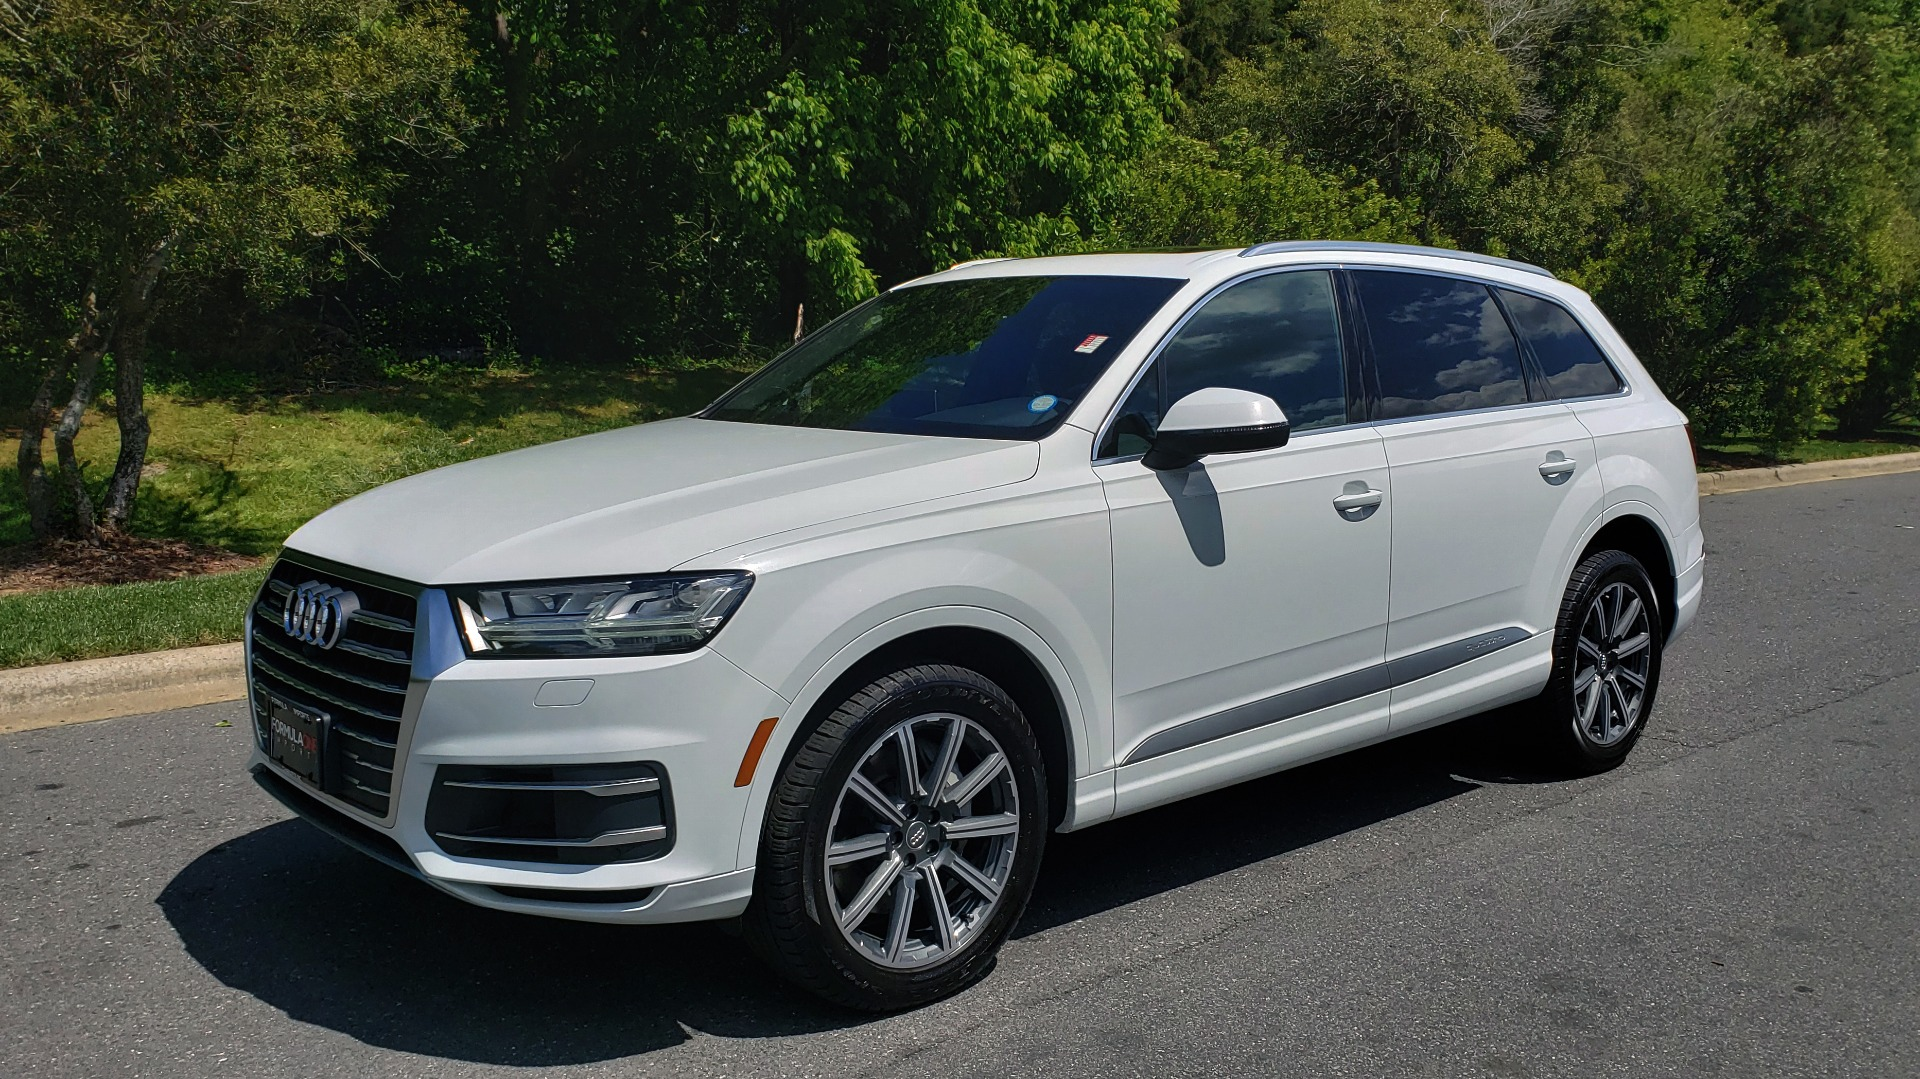 Used 2017 Audi Q7 PREMIUM PLUS / VISION PKG / NAV / PANO-ROOF / 3-ROW / REARVIEW for sale Sold at Formula Imports in Charlotte NC 28227 1